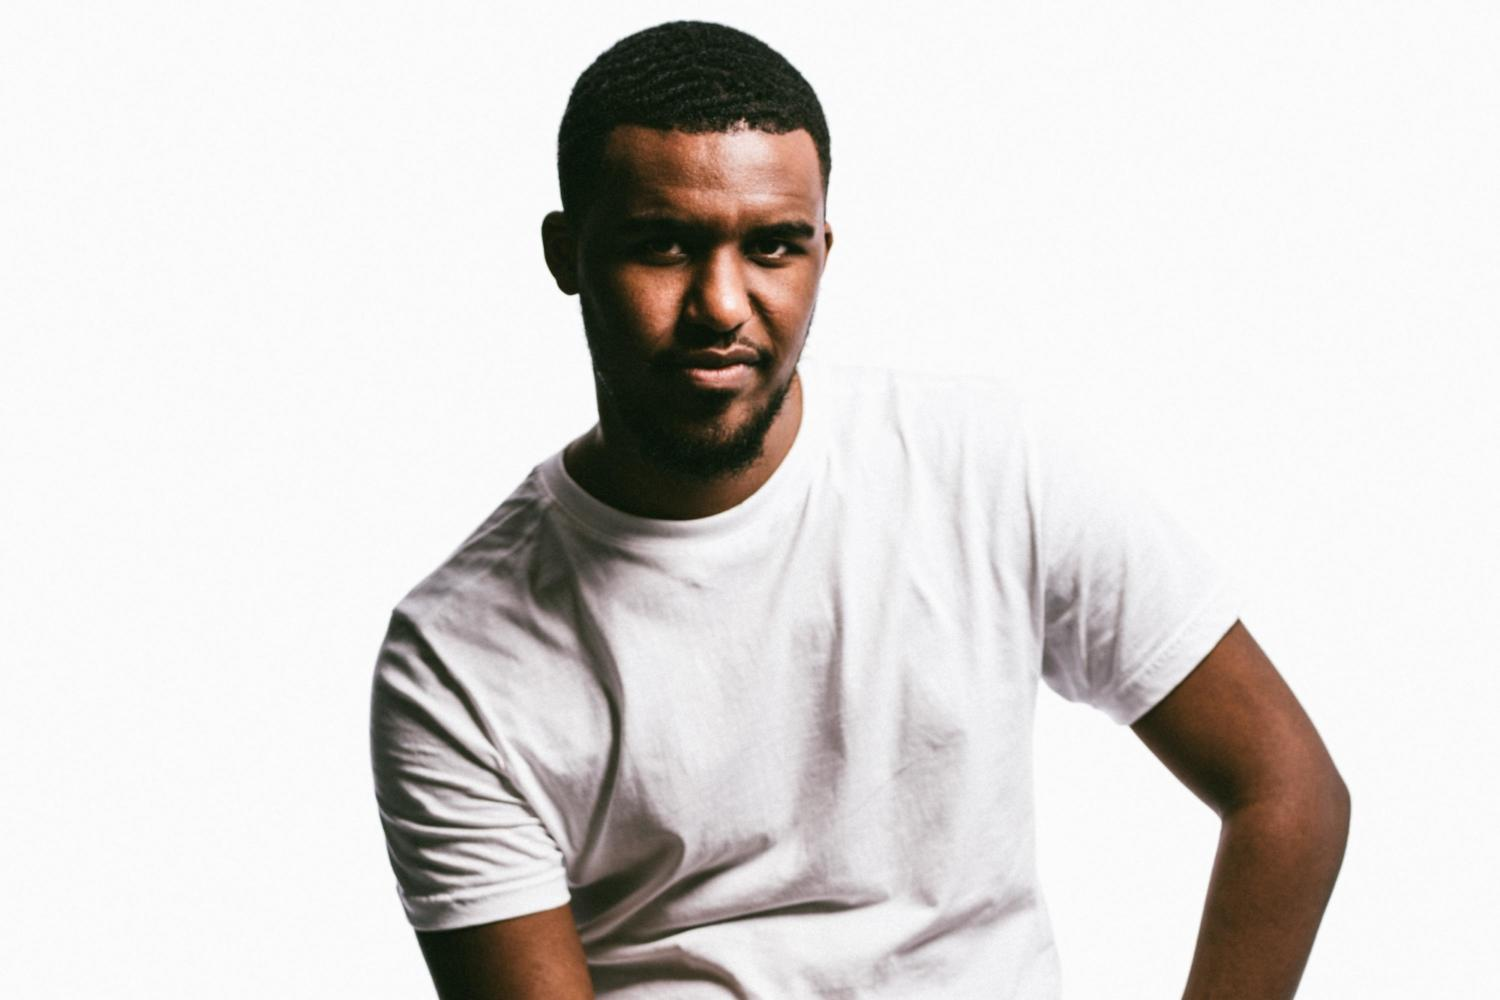 Novelist is the 2019 Independent Venue Week Ambassador